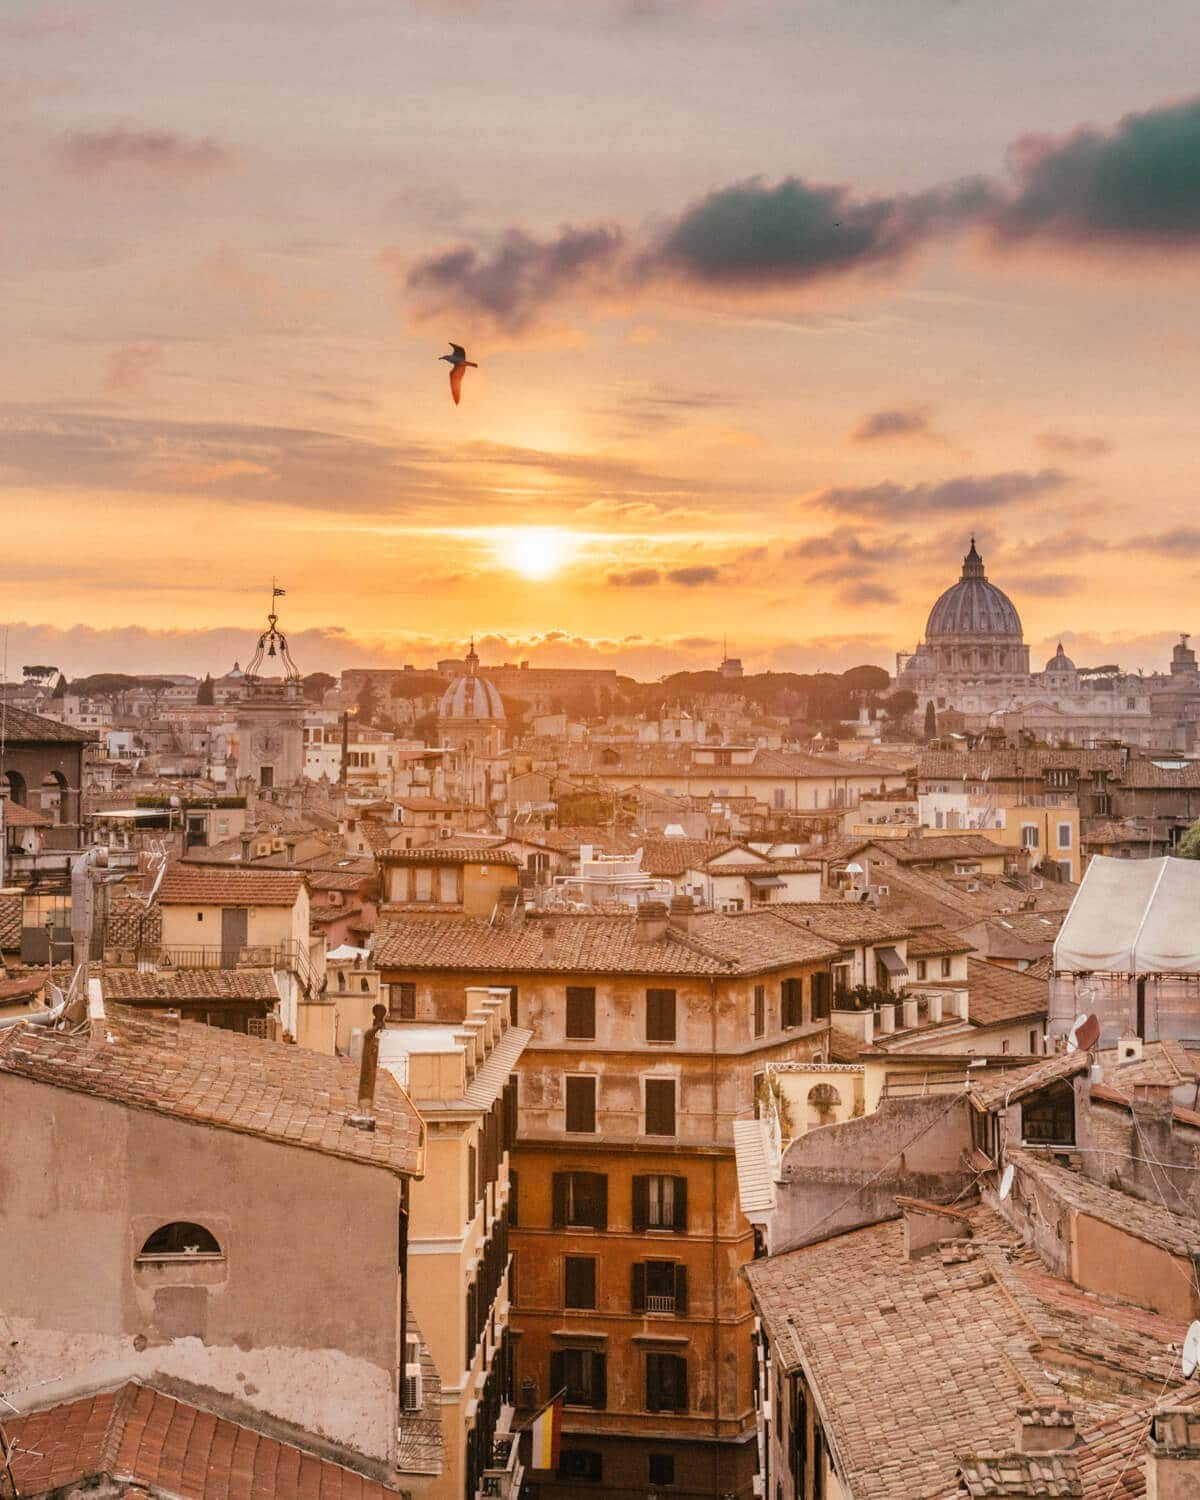 A Full Review of the Best Tours in Rome with City Wonders Best Rome tours   Rome, Italy   What to do in Rome   Vatican tours Rome   Walking tours Rome   Top things to do in Rome   Travel tips Rome   Rome itinerary   Best tour companies Europe